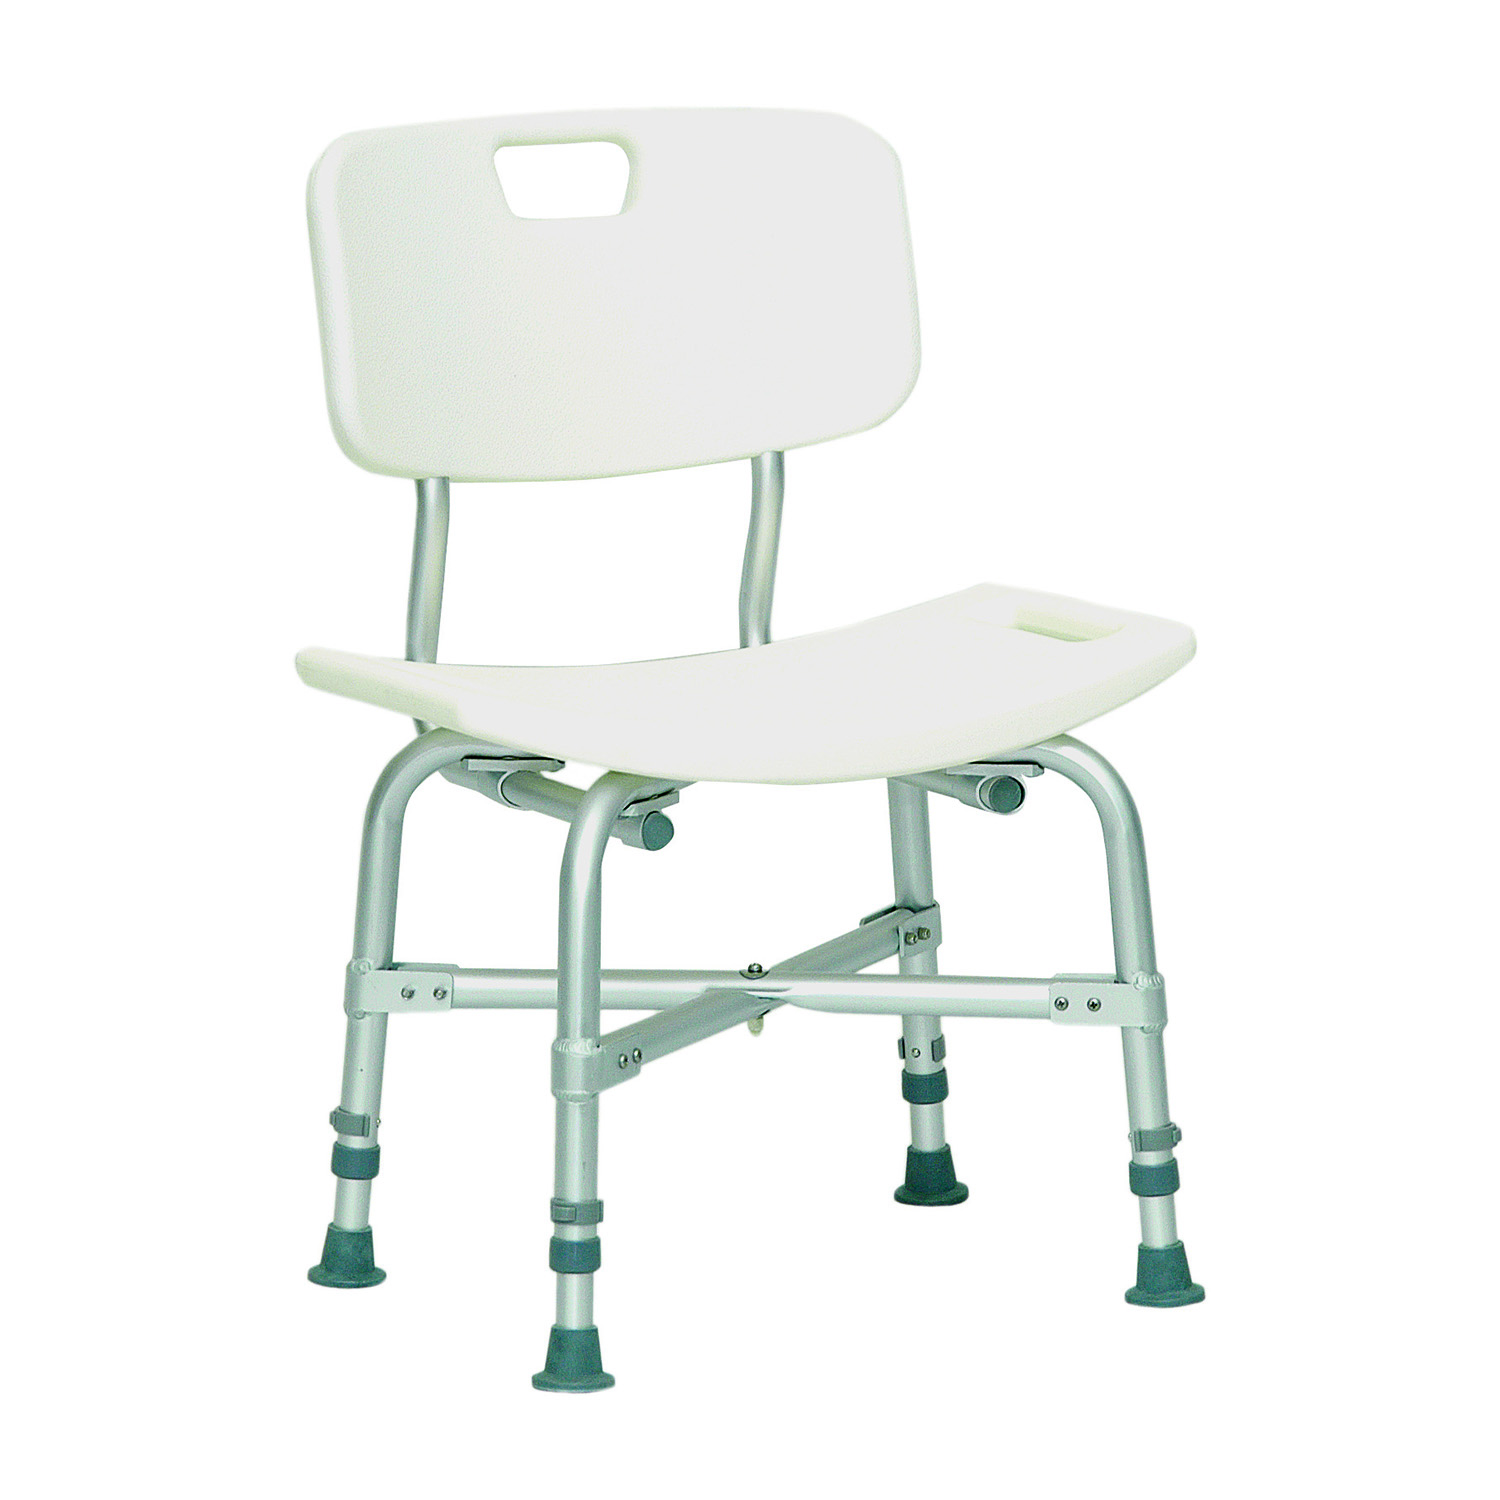 ProBasics Bariatric Shower Chair with Back | Michigan USA